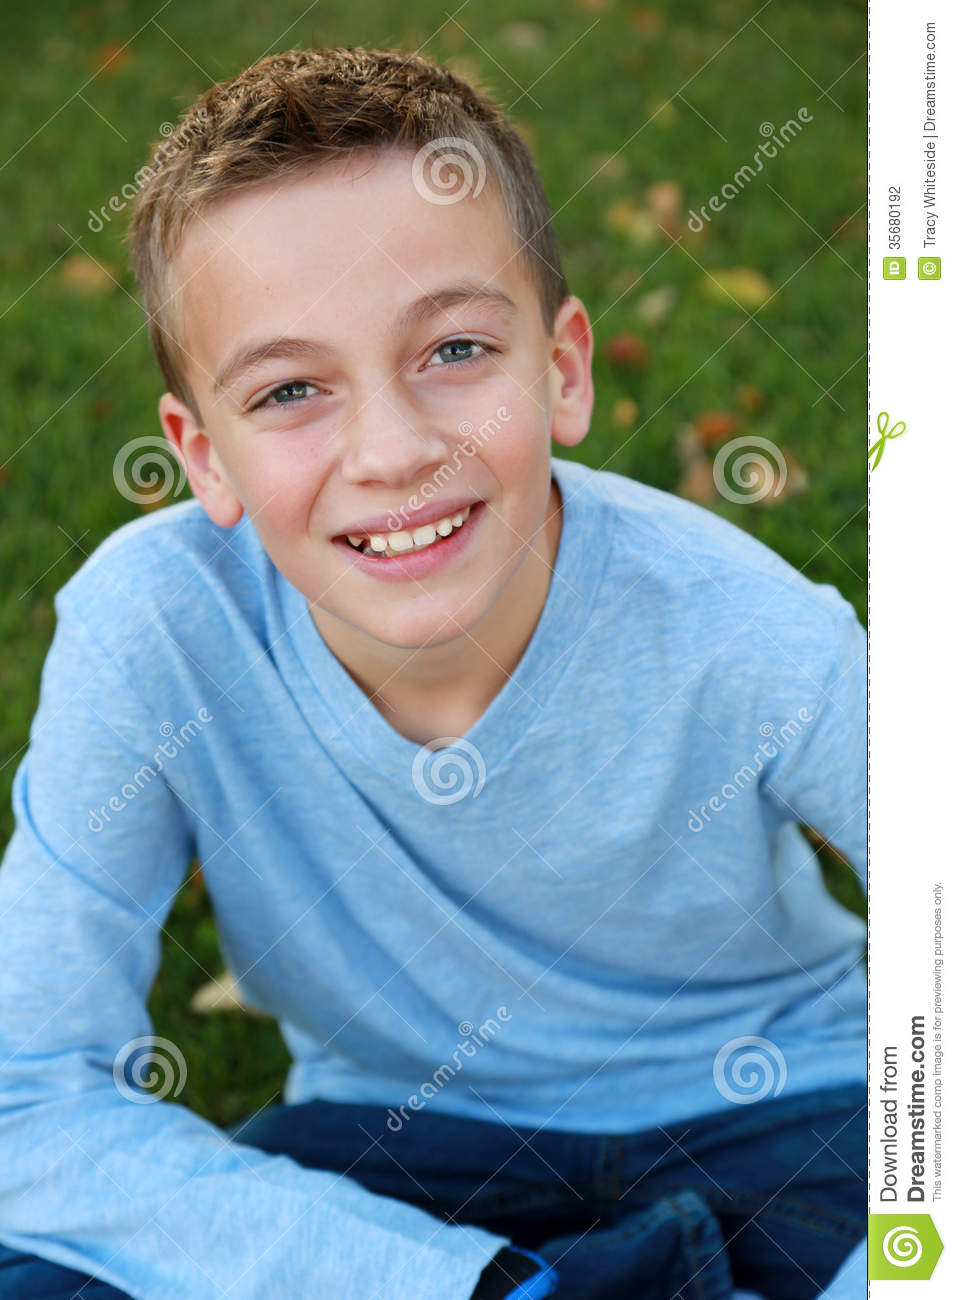 Smiling Boy In Natural Light Stock Photography Image